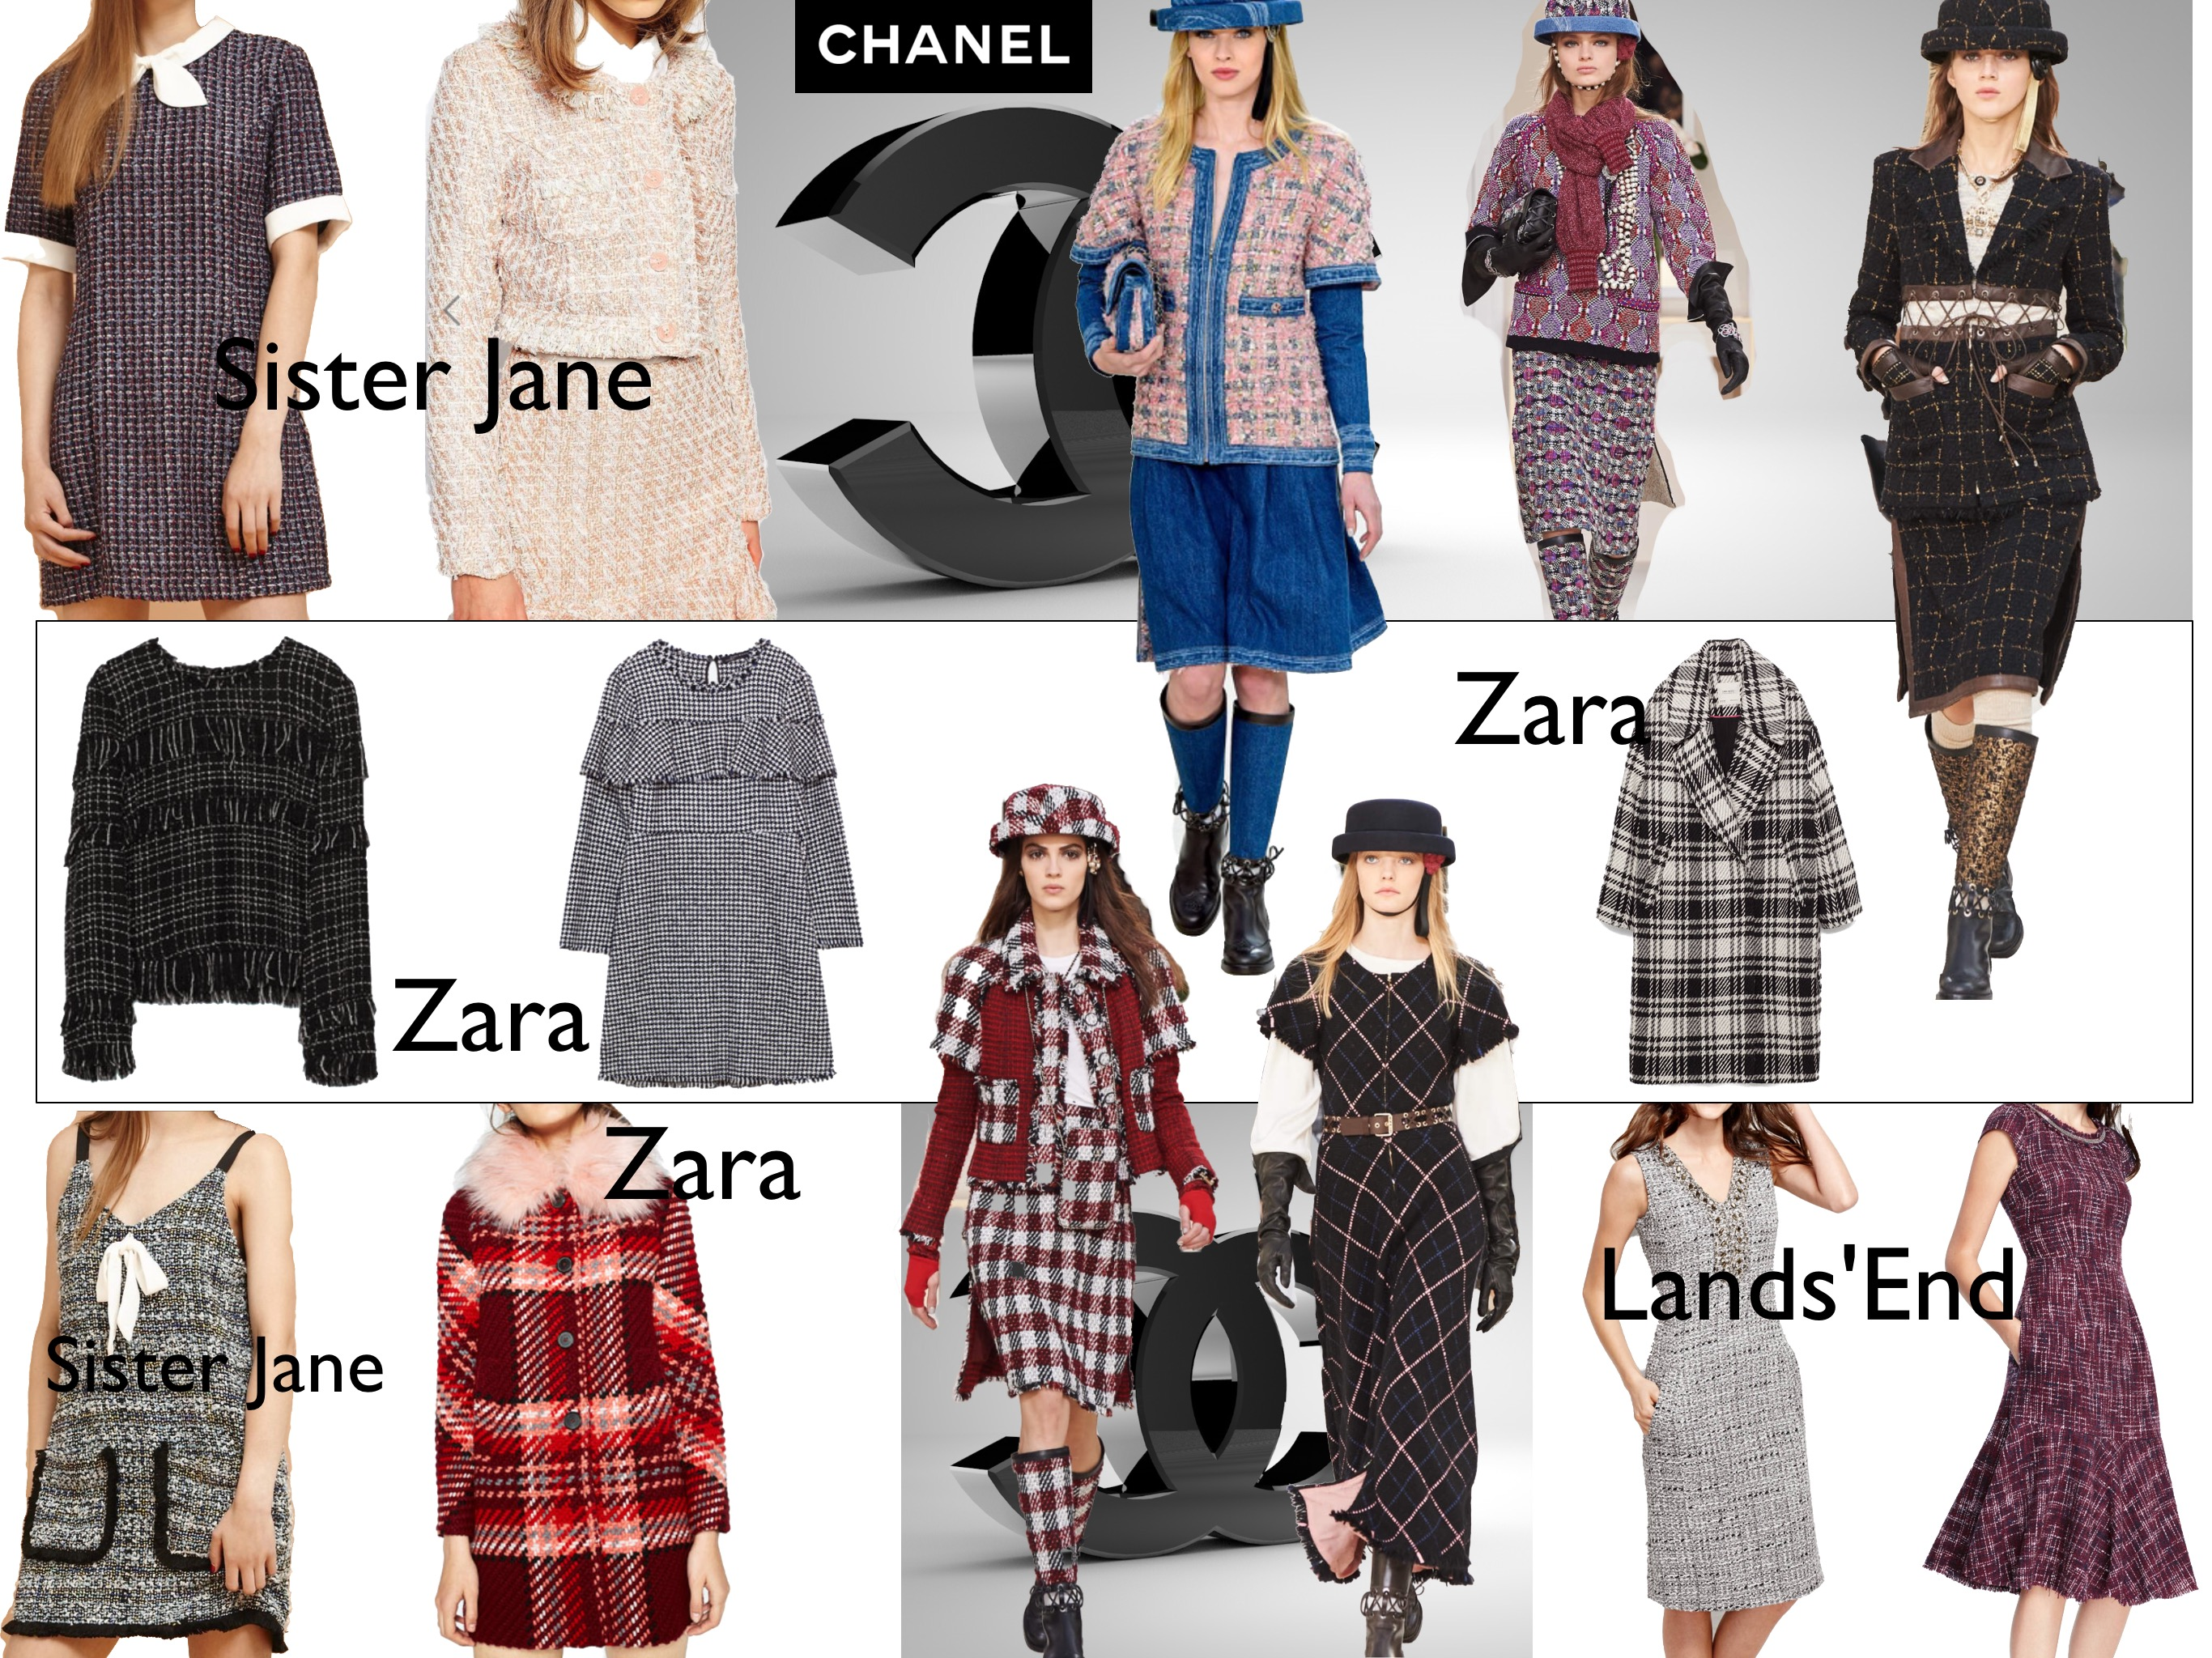 Chanel FW16 inspired outfits collection: tweed